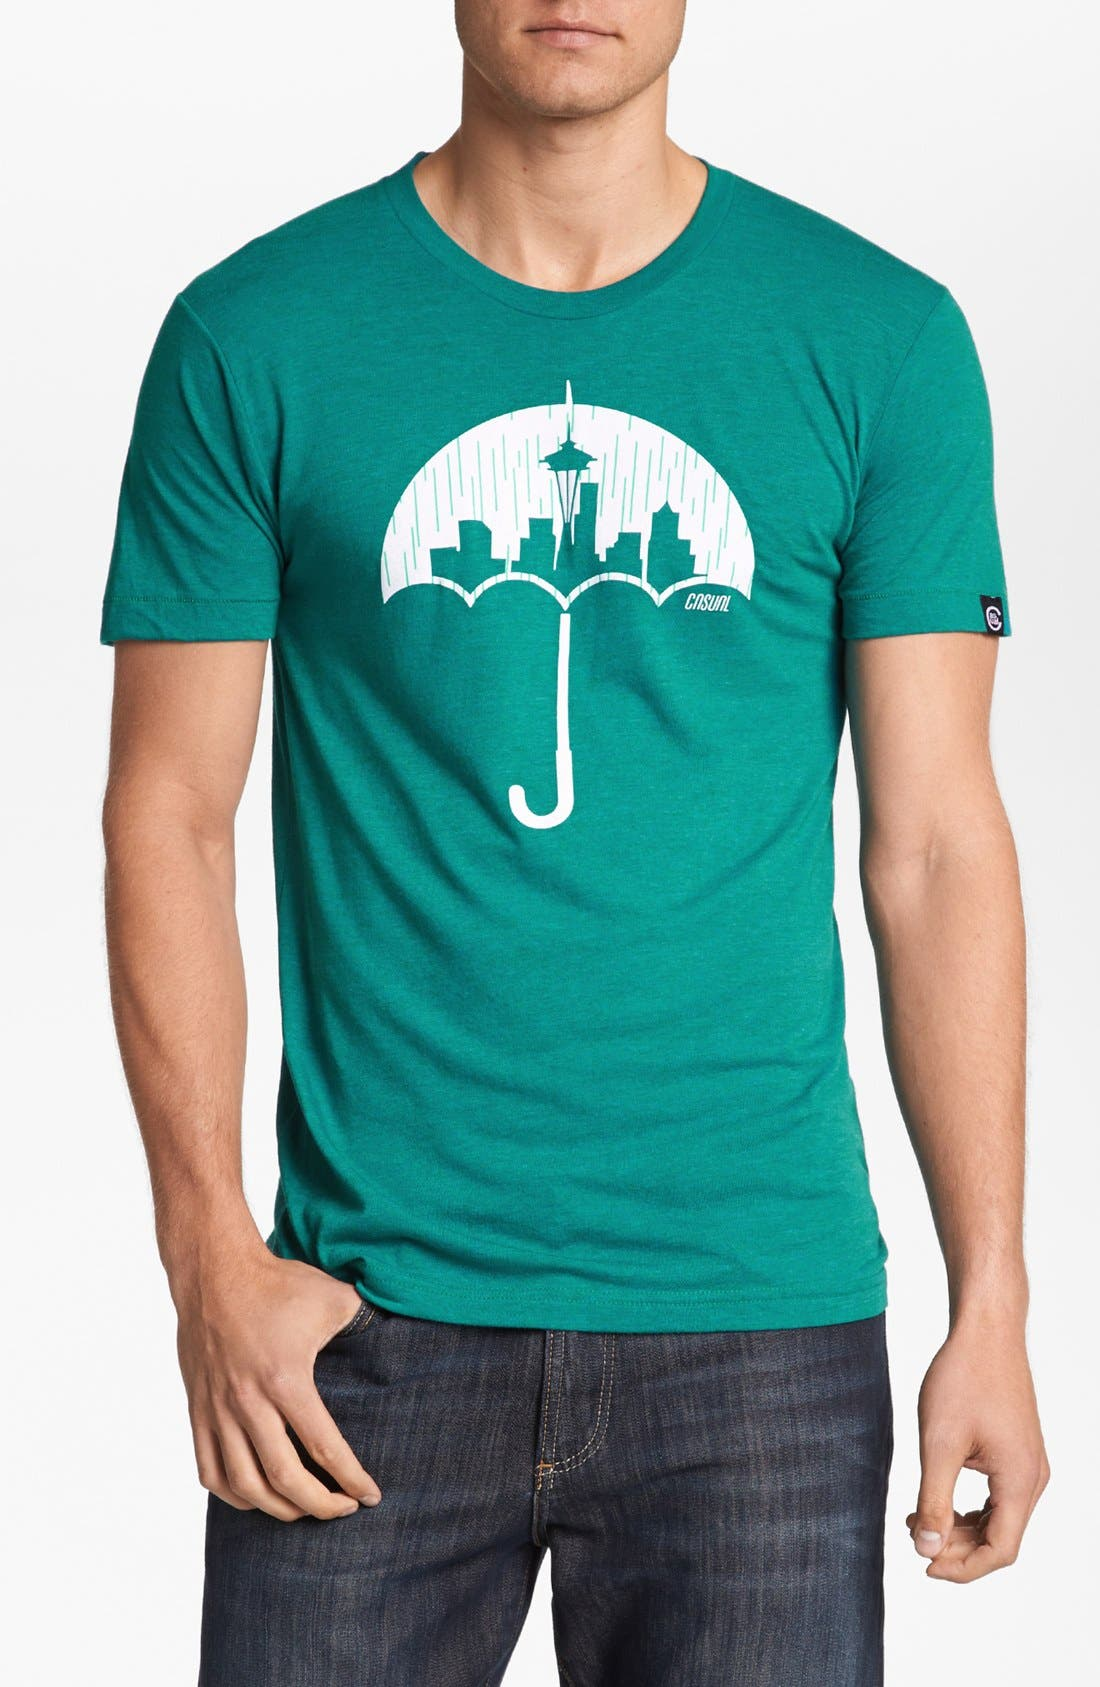 Alternate Image 1 Selected - Casual Industrees 'Umbrella Rain' Graphic T-Shirt